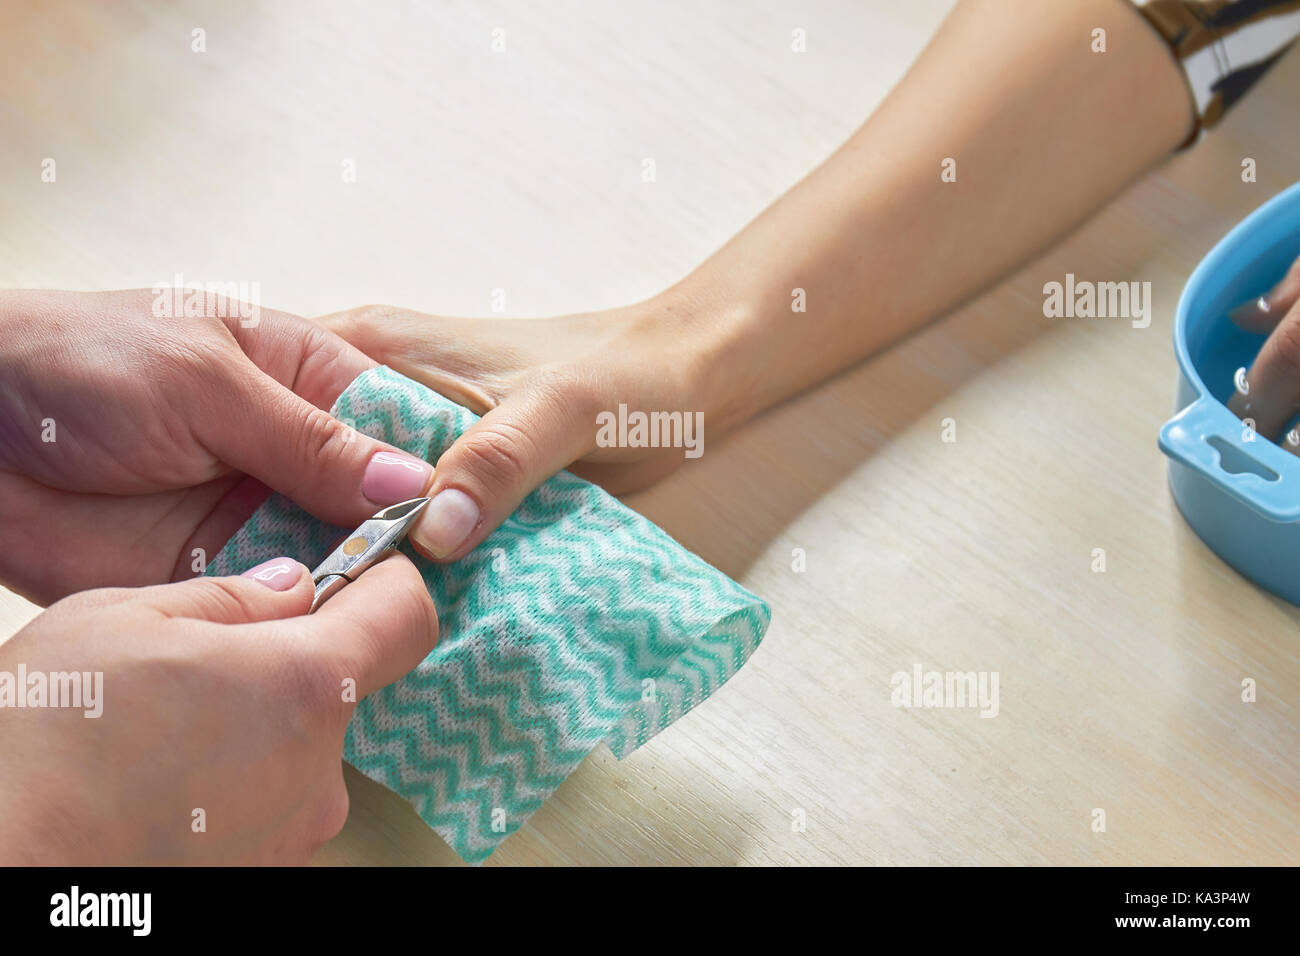 Cuticles Stock Photos & Cuticles Stock Images - Alamy